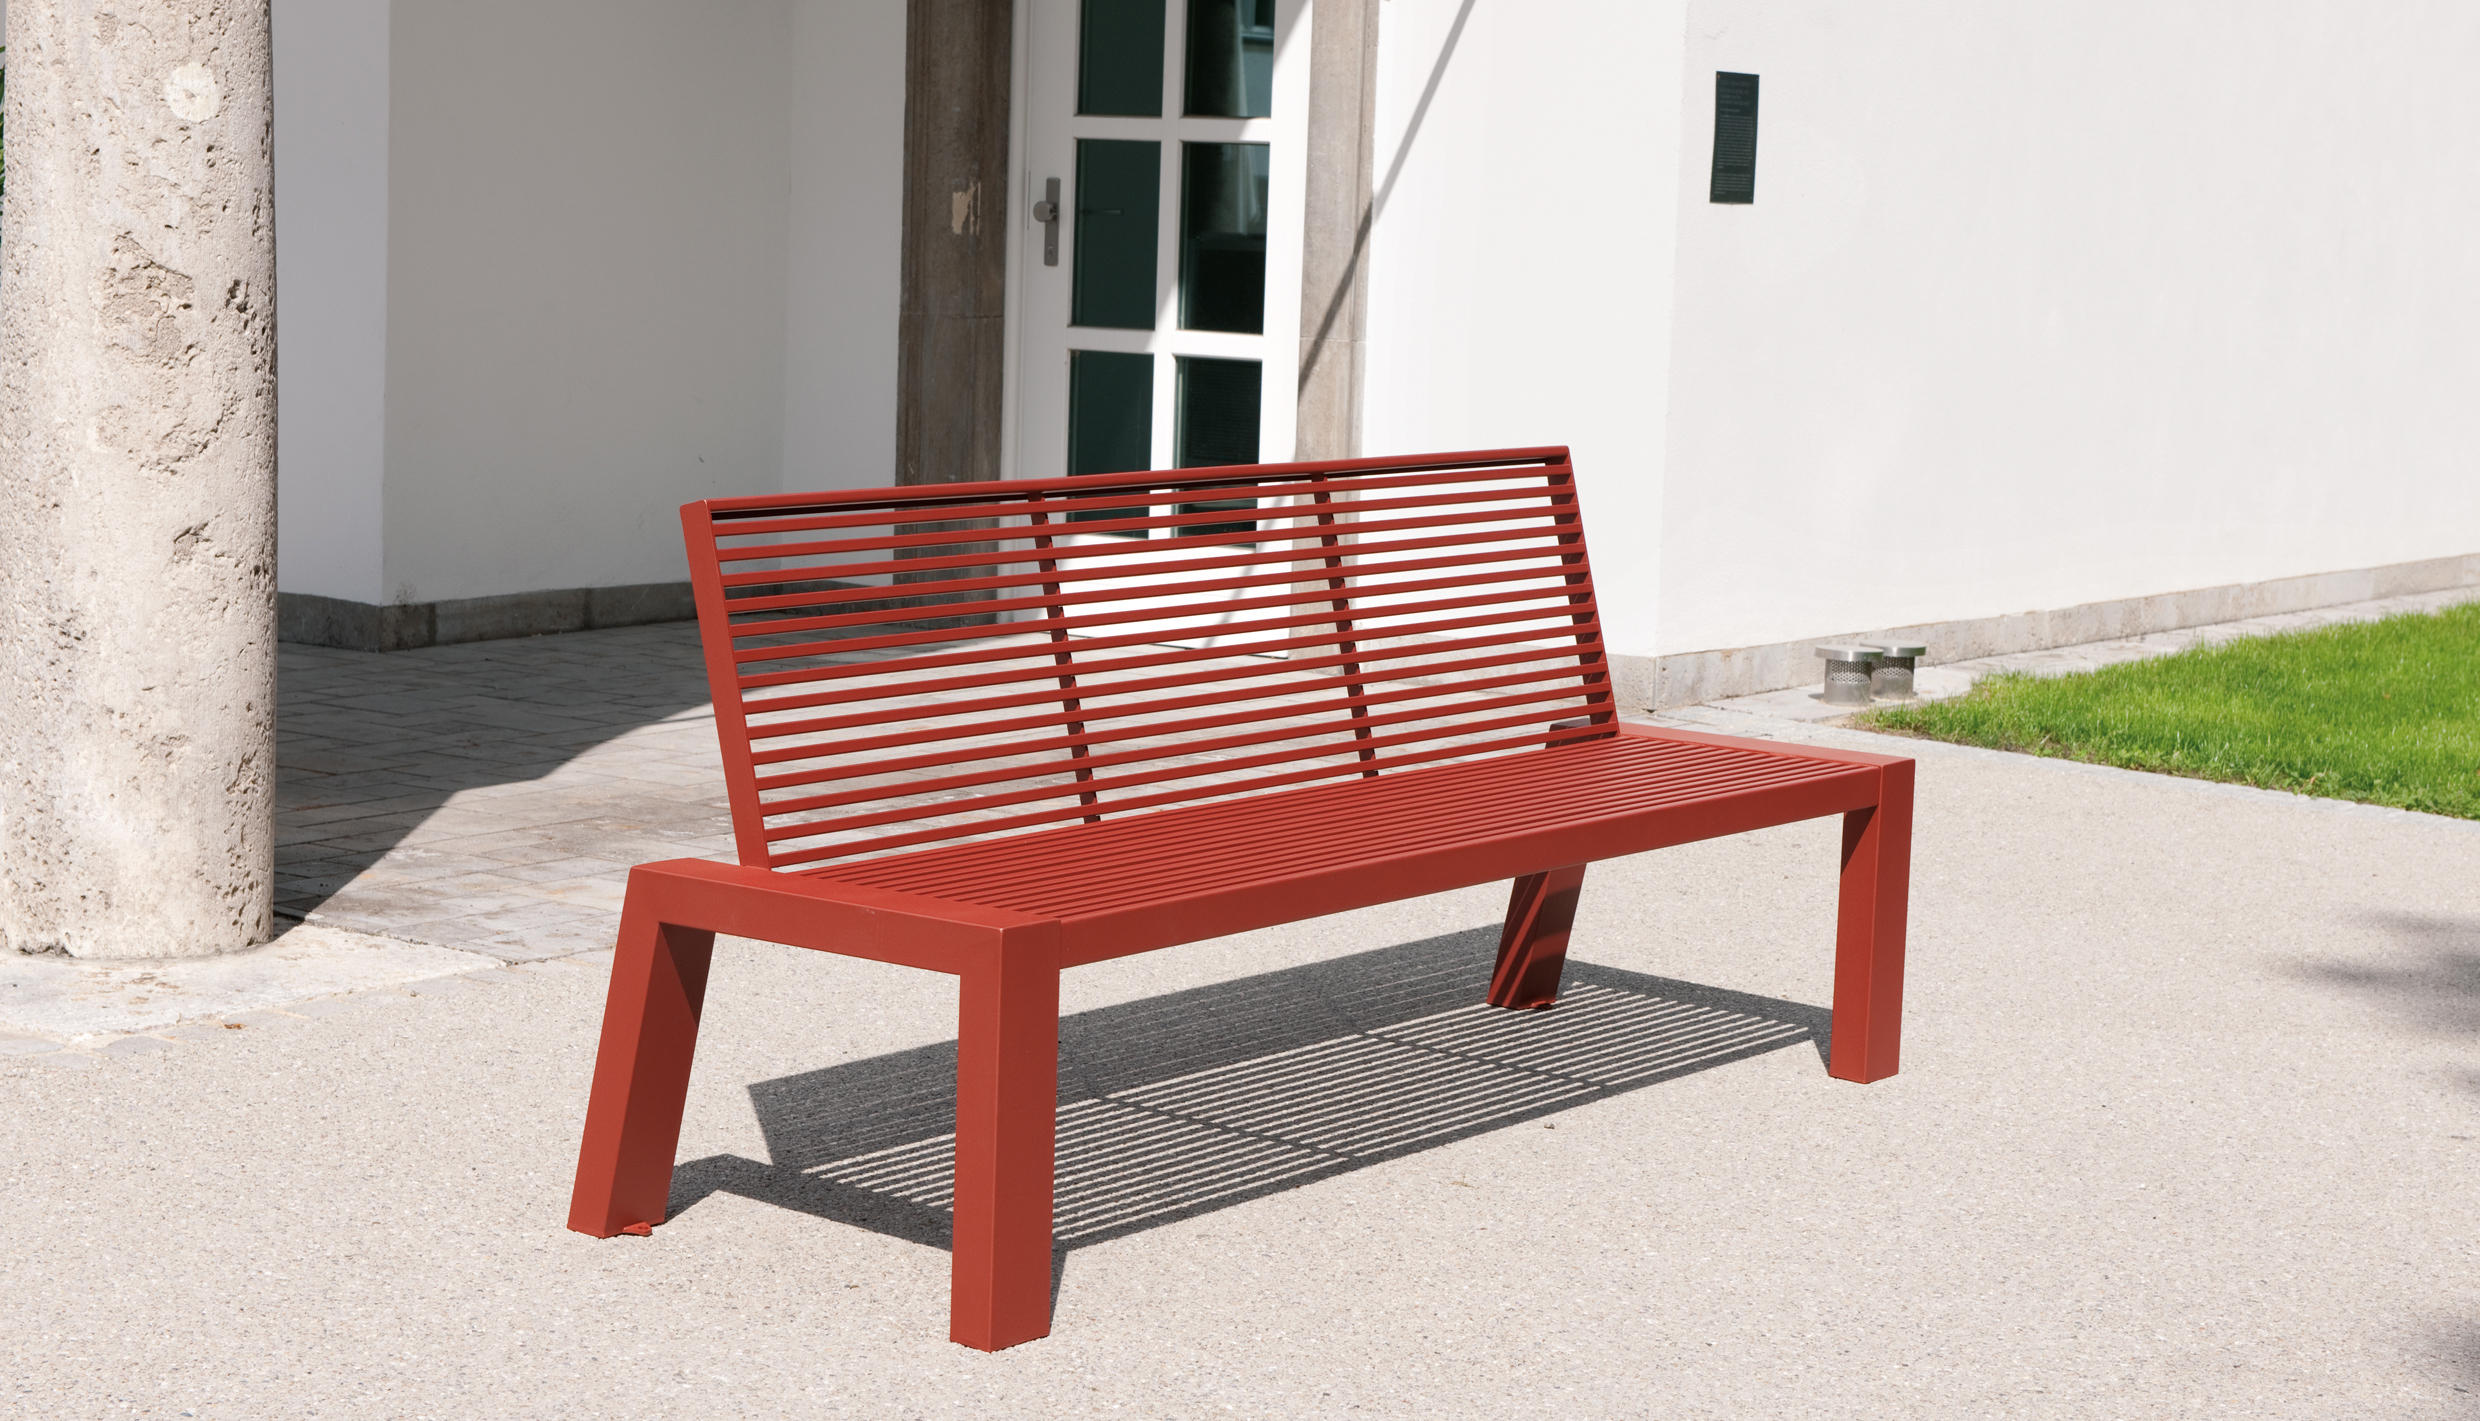 Sicorum m 100 bench with armrests panche da esterno for Arredo urbano in inglese